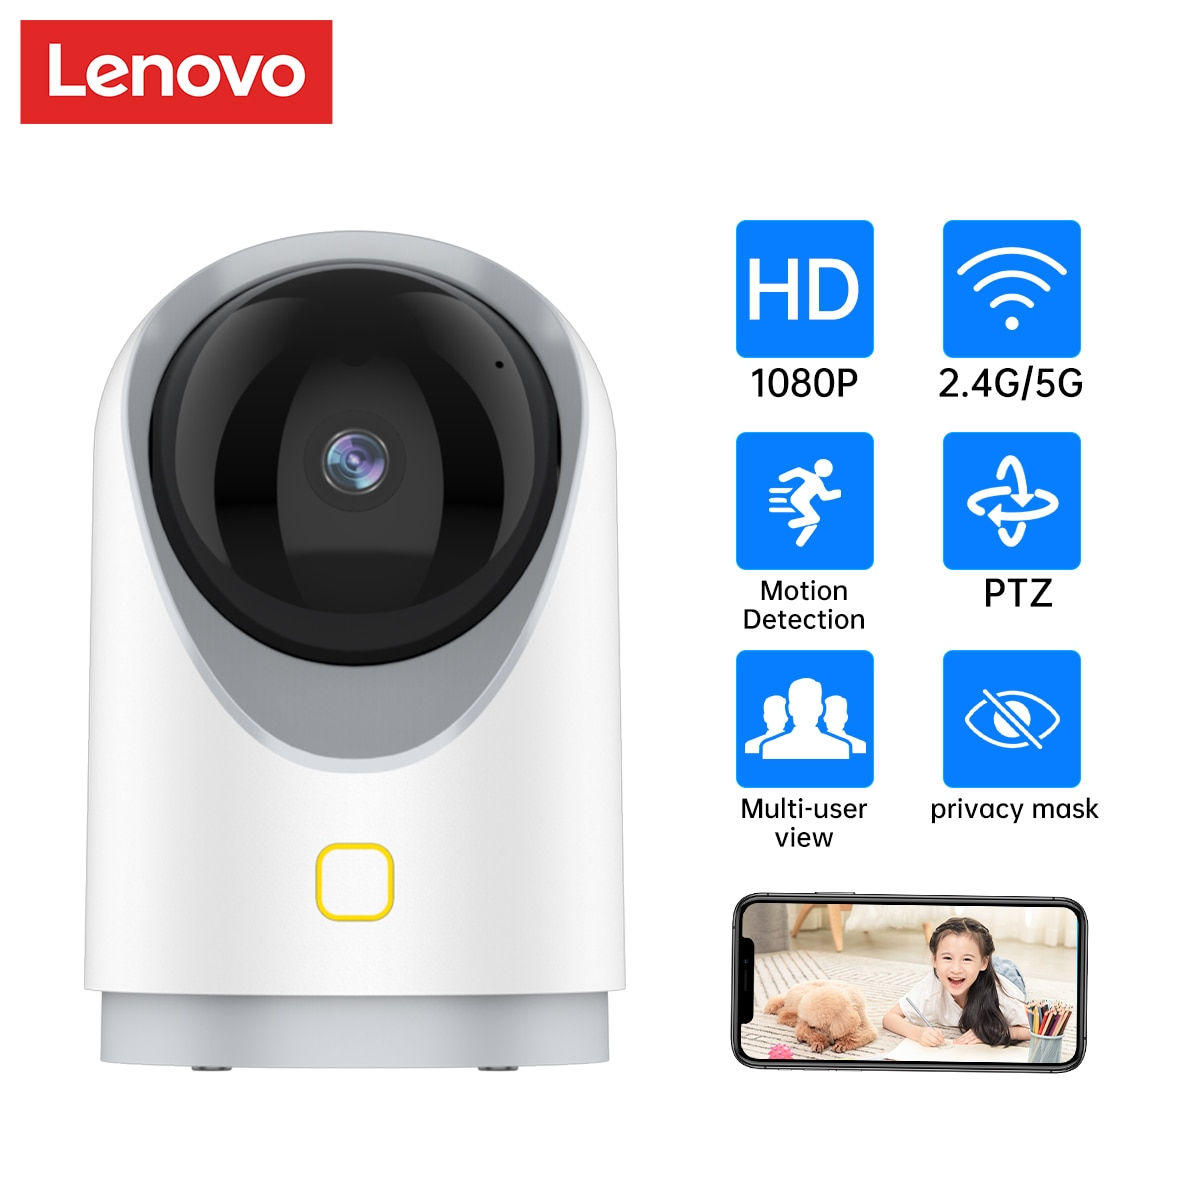 Lenovo 2.4G/5G Wifi Camera 1080P Security Camera Wireless CCTV Camera Surveillance P2P Baby Monitor  For Home Security